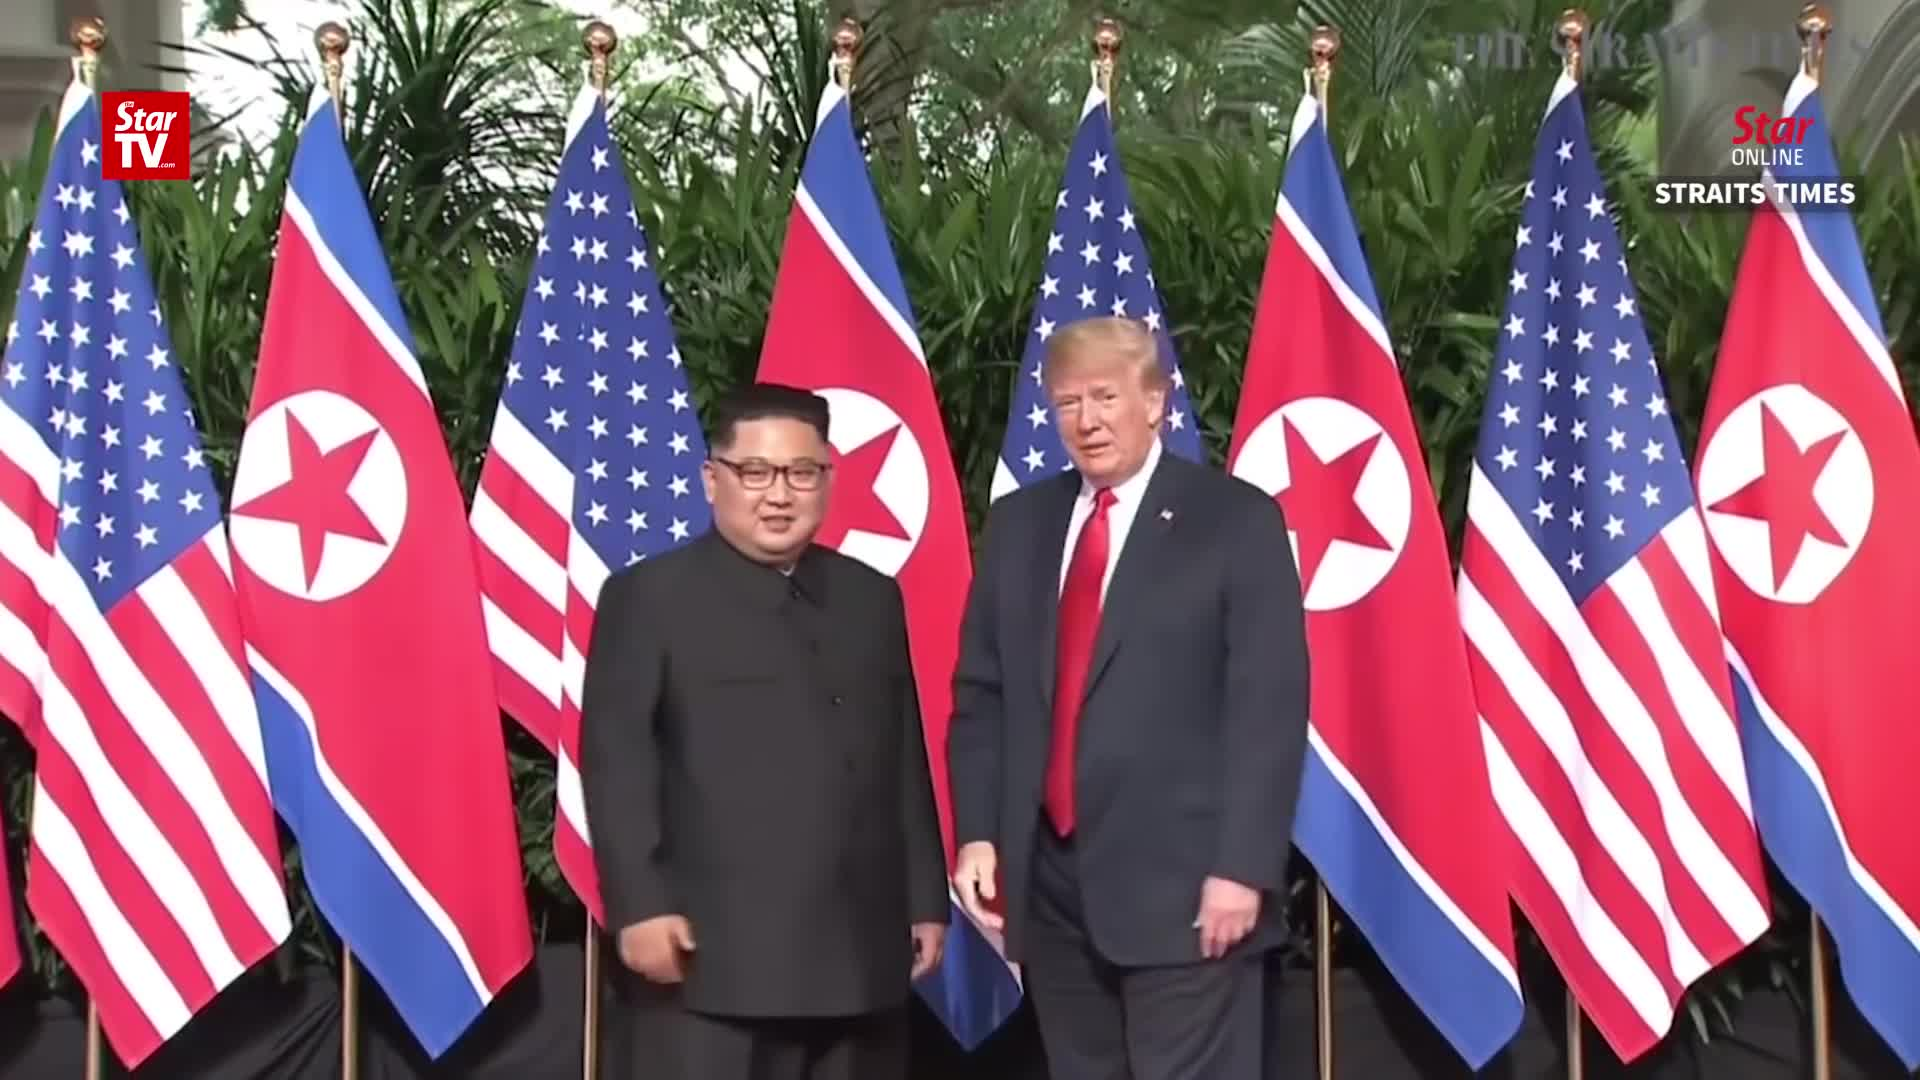 2018, america, capella hotel, donald trump, kim jong un, korean peninsula, north korea, politics, straits times, summit, usa, Donald Trump and Kim Jong Un meet for first time GIFs